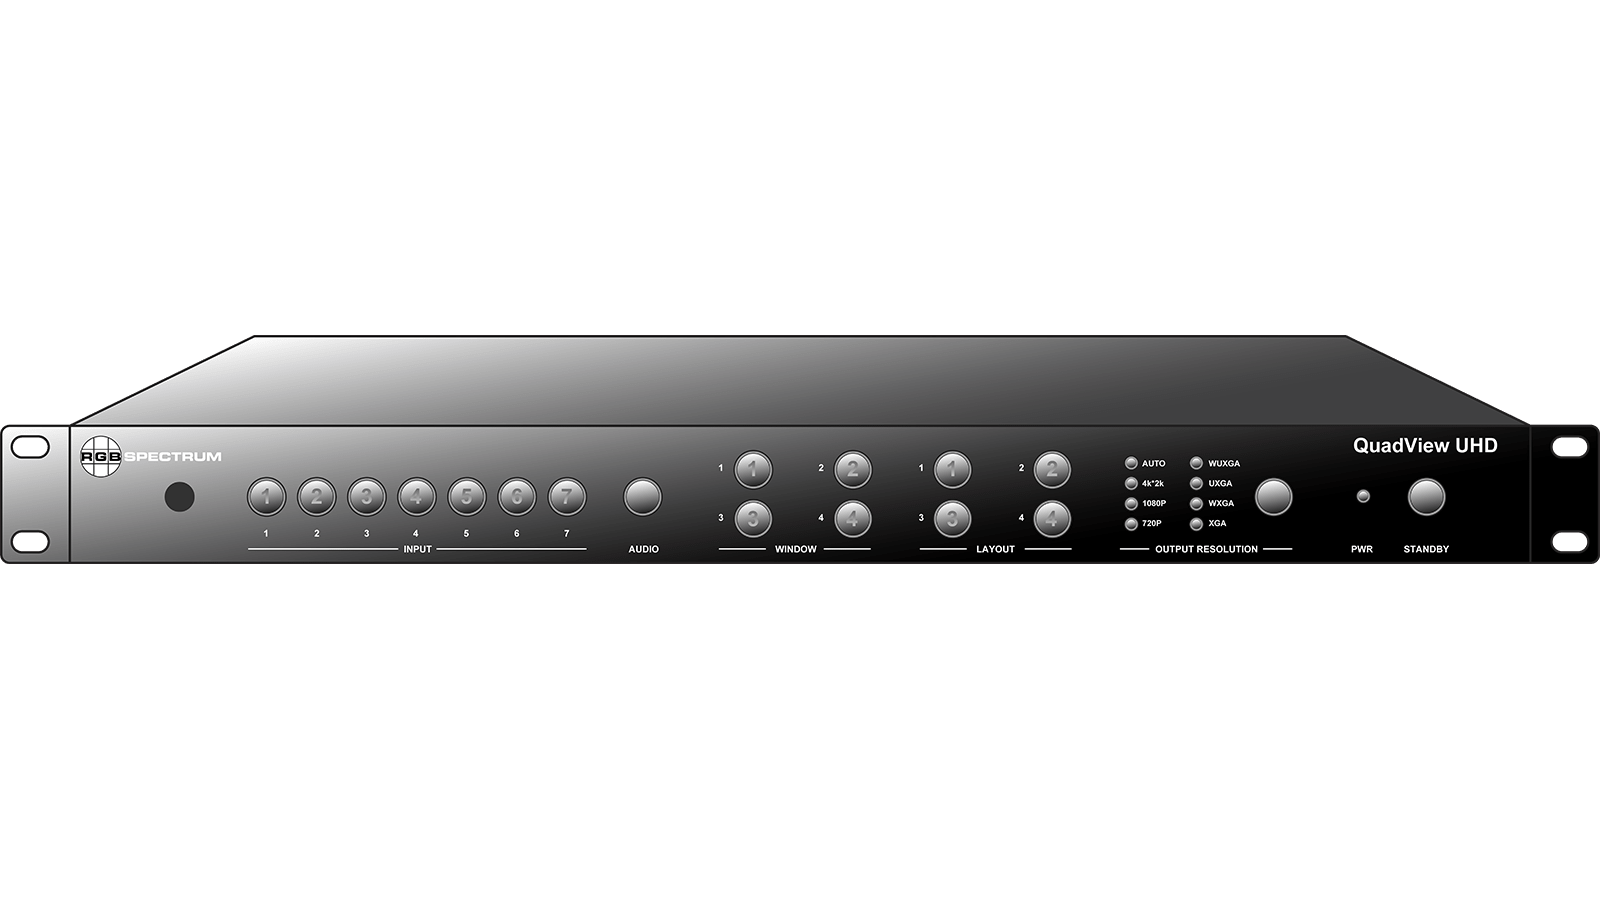 QuadView UHD: Front Panel